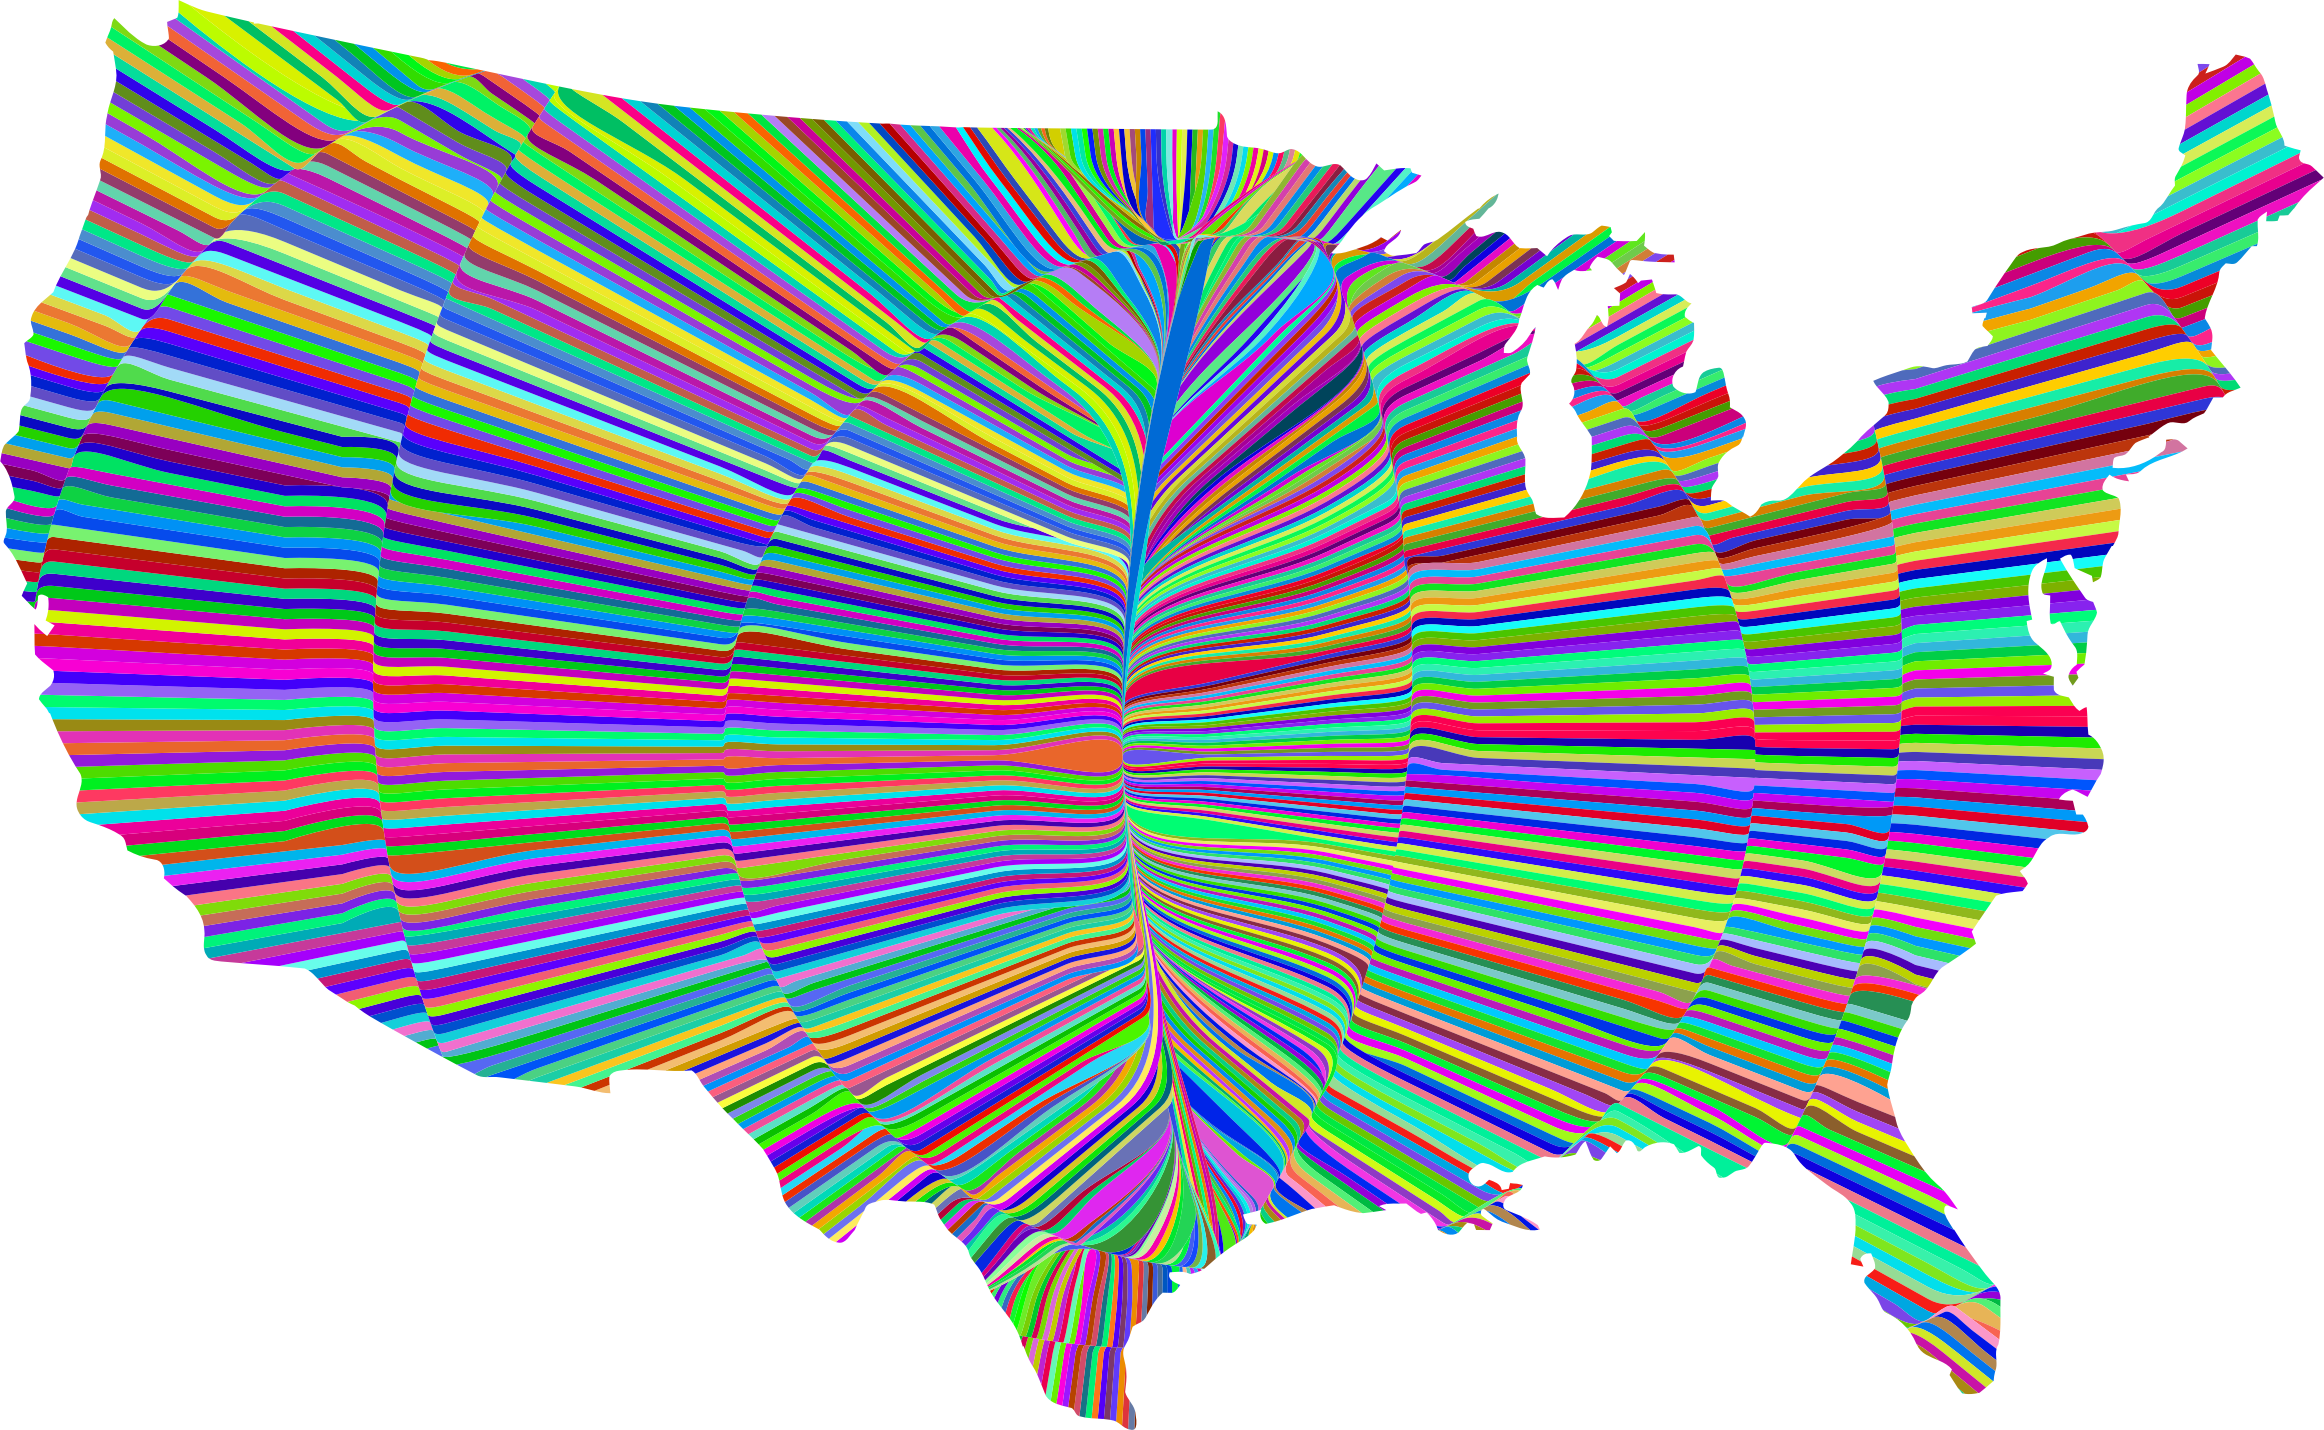 Psychedelic Waves United States Map by GDJ